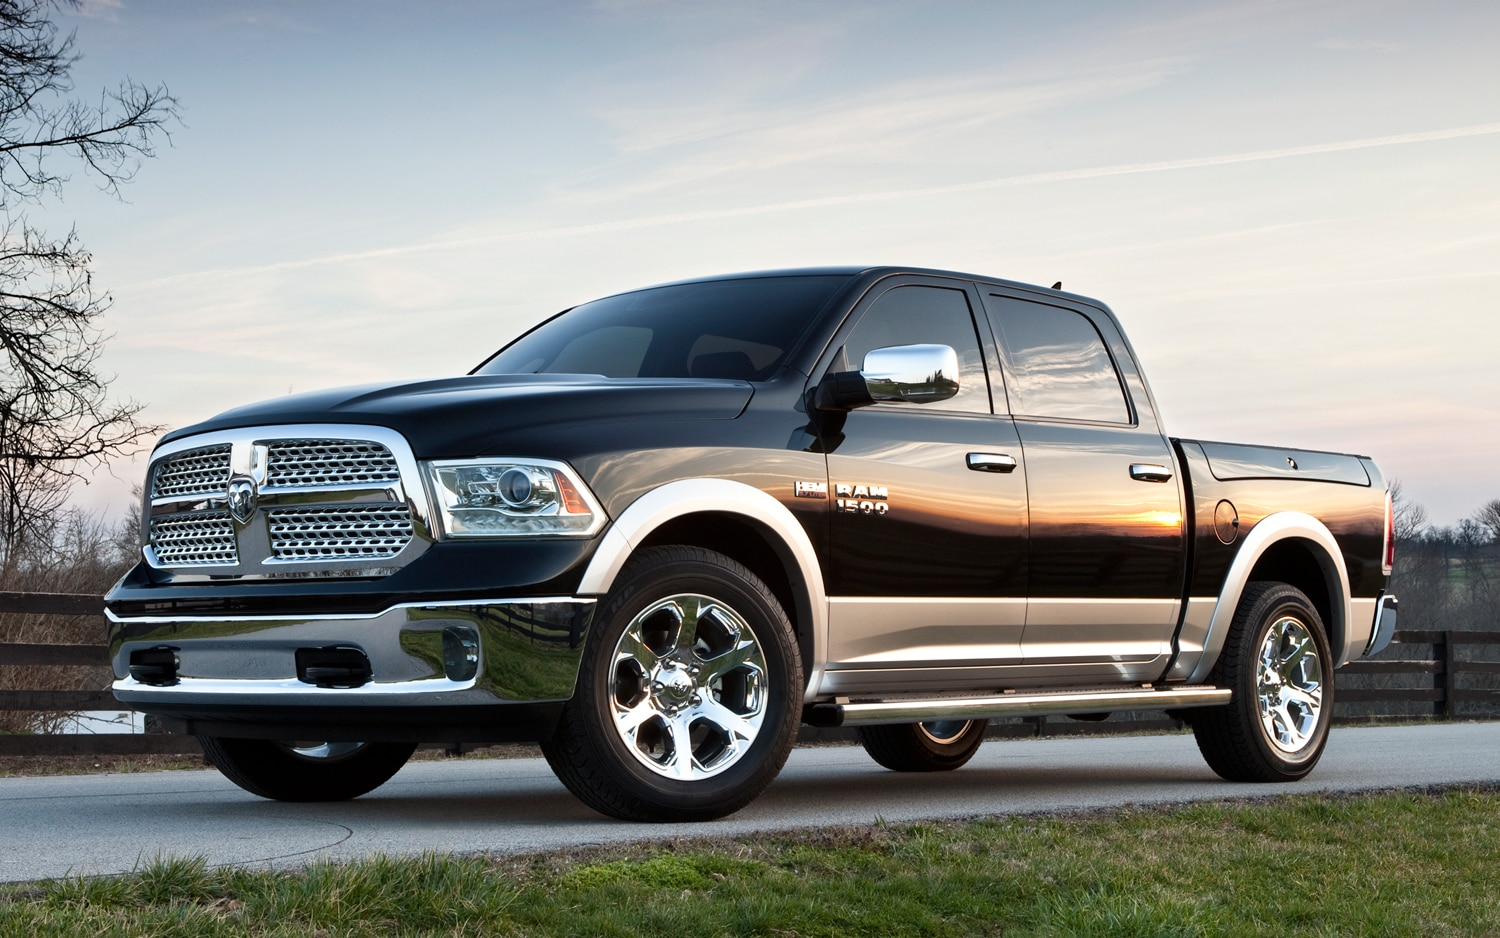 2013 Ram 1500 Front Three Quarter 01